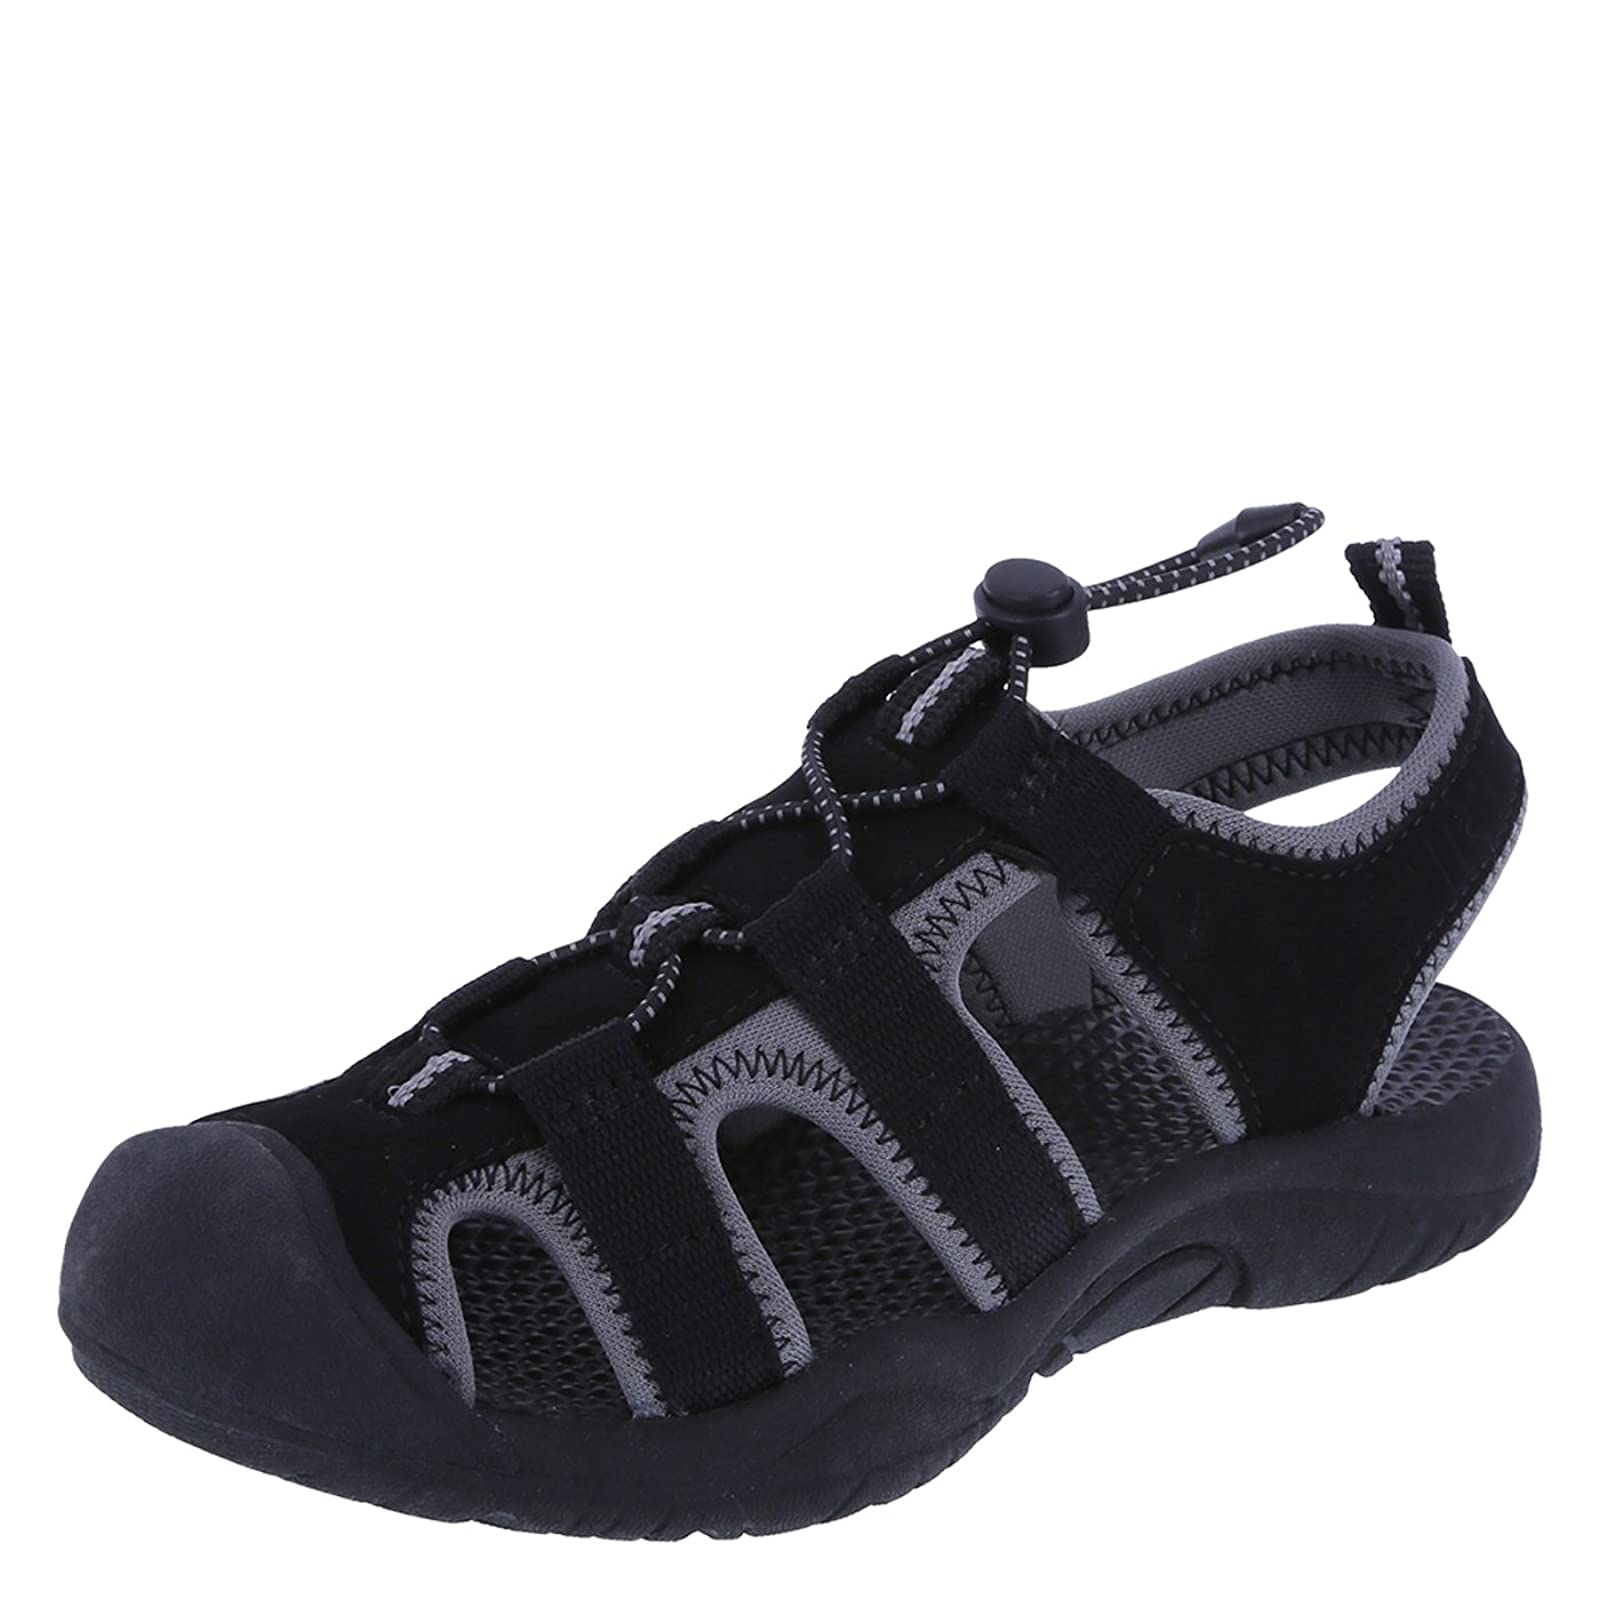 Rugged Outback Boys' Bumptoe Sandal One Size - 4